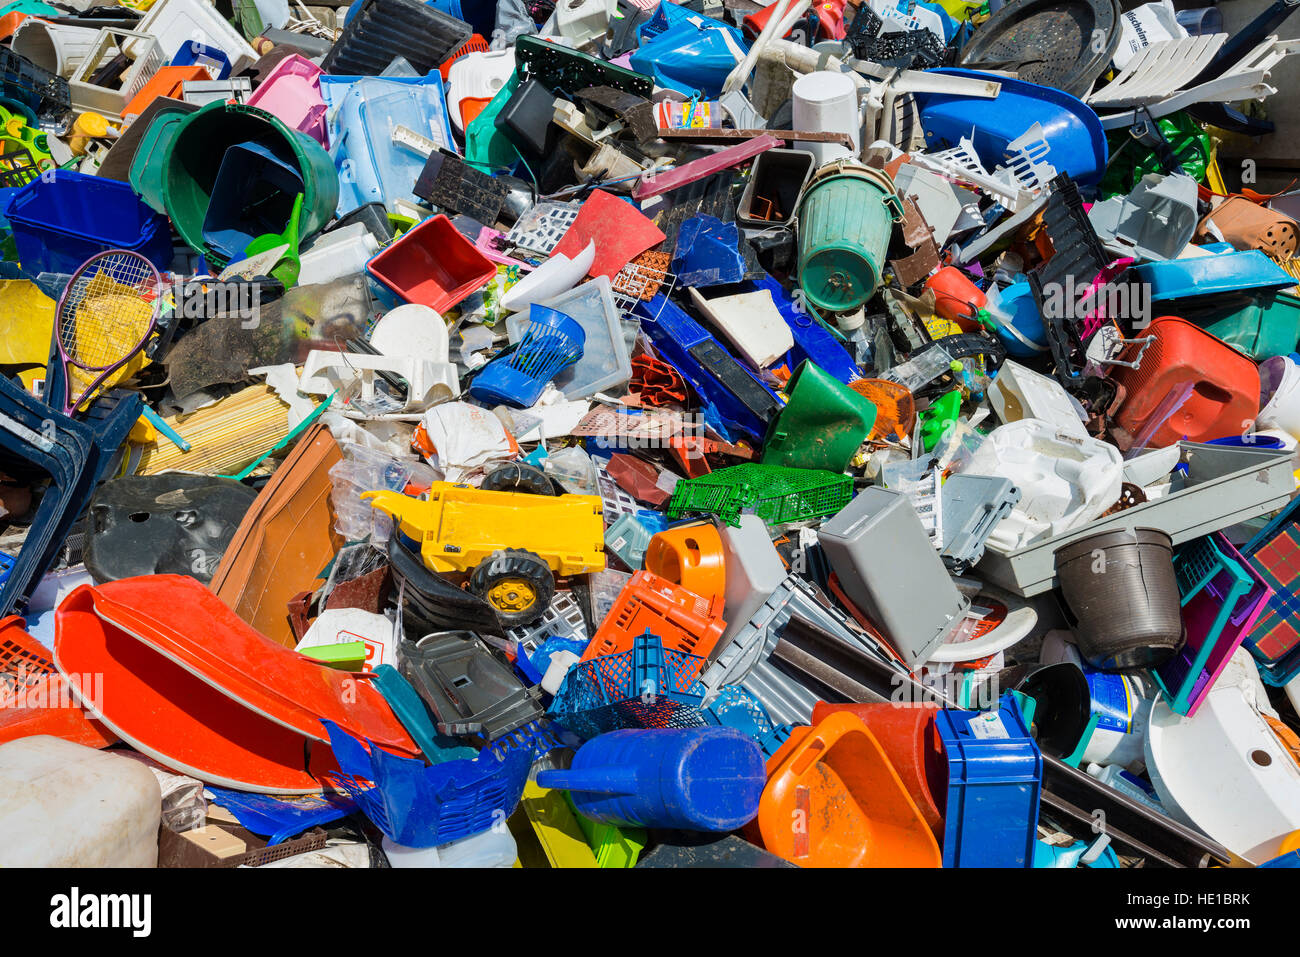 Colourful rubbish, plastic waste sorted for recycling - Stock Image